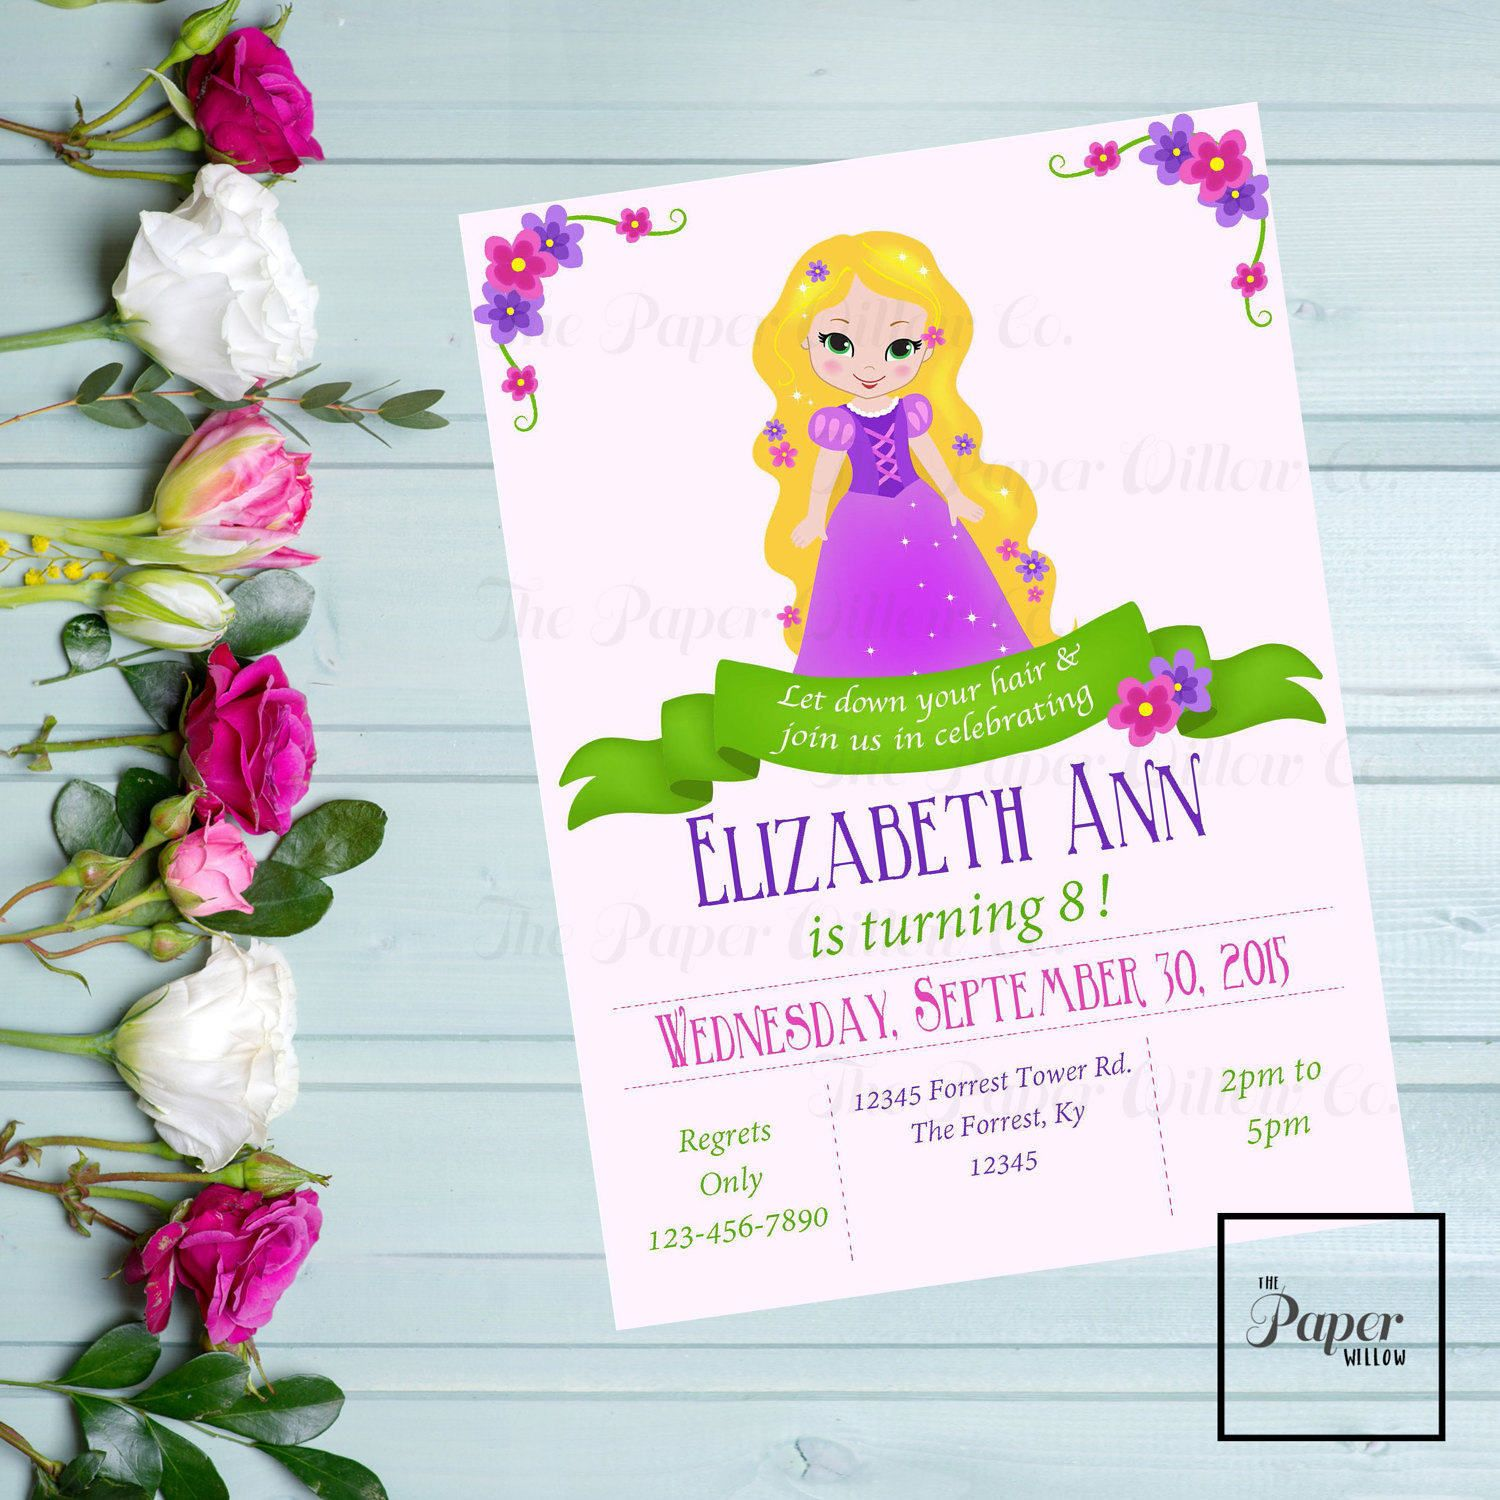 A tangled birthday invitation rapunzel editable instant download a tangled birthday invitation rapunzel editable instant download print yourself editable pdf tangled birthday party invite by paperwillowdesigns on etsy filmwisefo